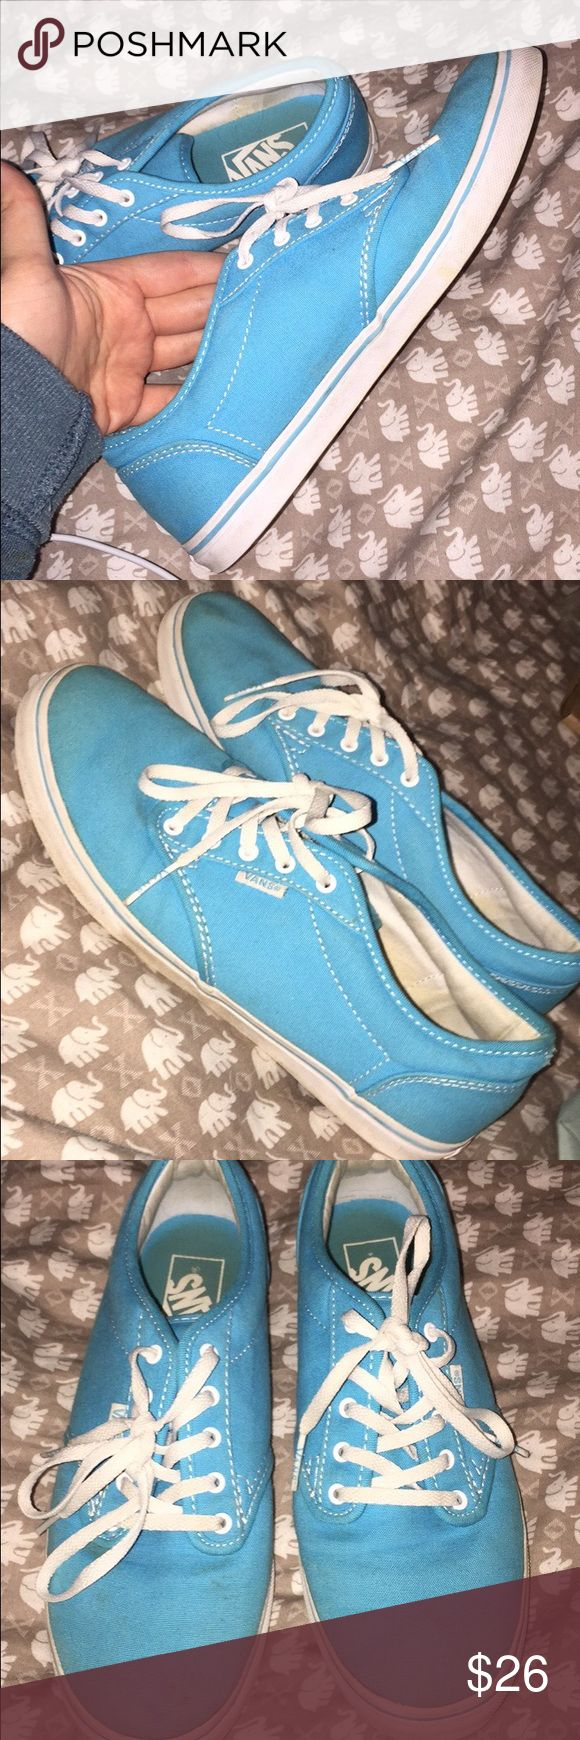 Women's Vans Blue  with white women's vans. Size 8.5. Only actually wore them a few times because the color wasn't my style.. so they aren't worn out or anything at all.. but do have some dirt spots on them. Actually probably would wash right off😂 I also have all black ones if anyone's interested😊 Just make an offer! Vans Shoes Sneakers